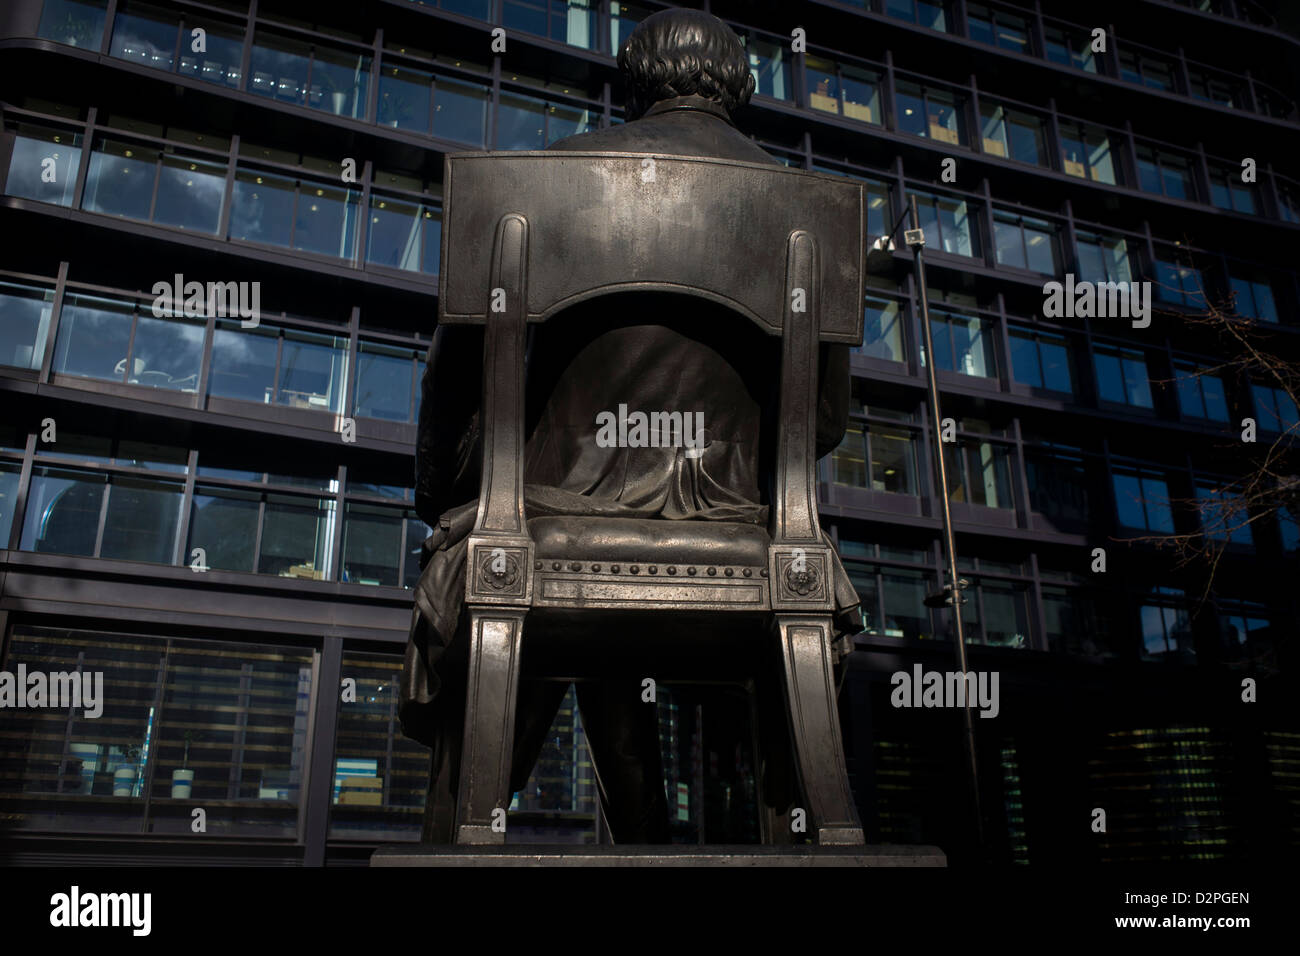 The rear of the statue of George Peabody and modern offices in the heart of the financial City of London. Peabody - Stock Image